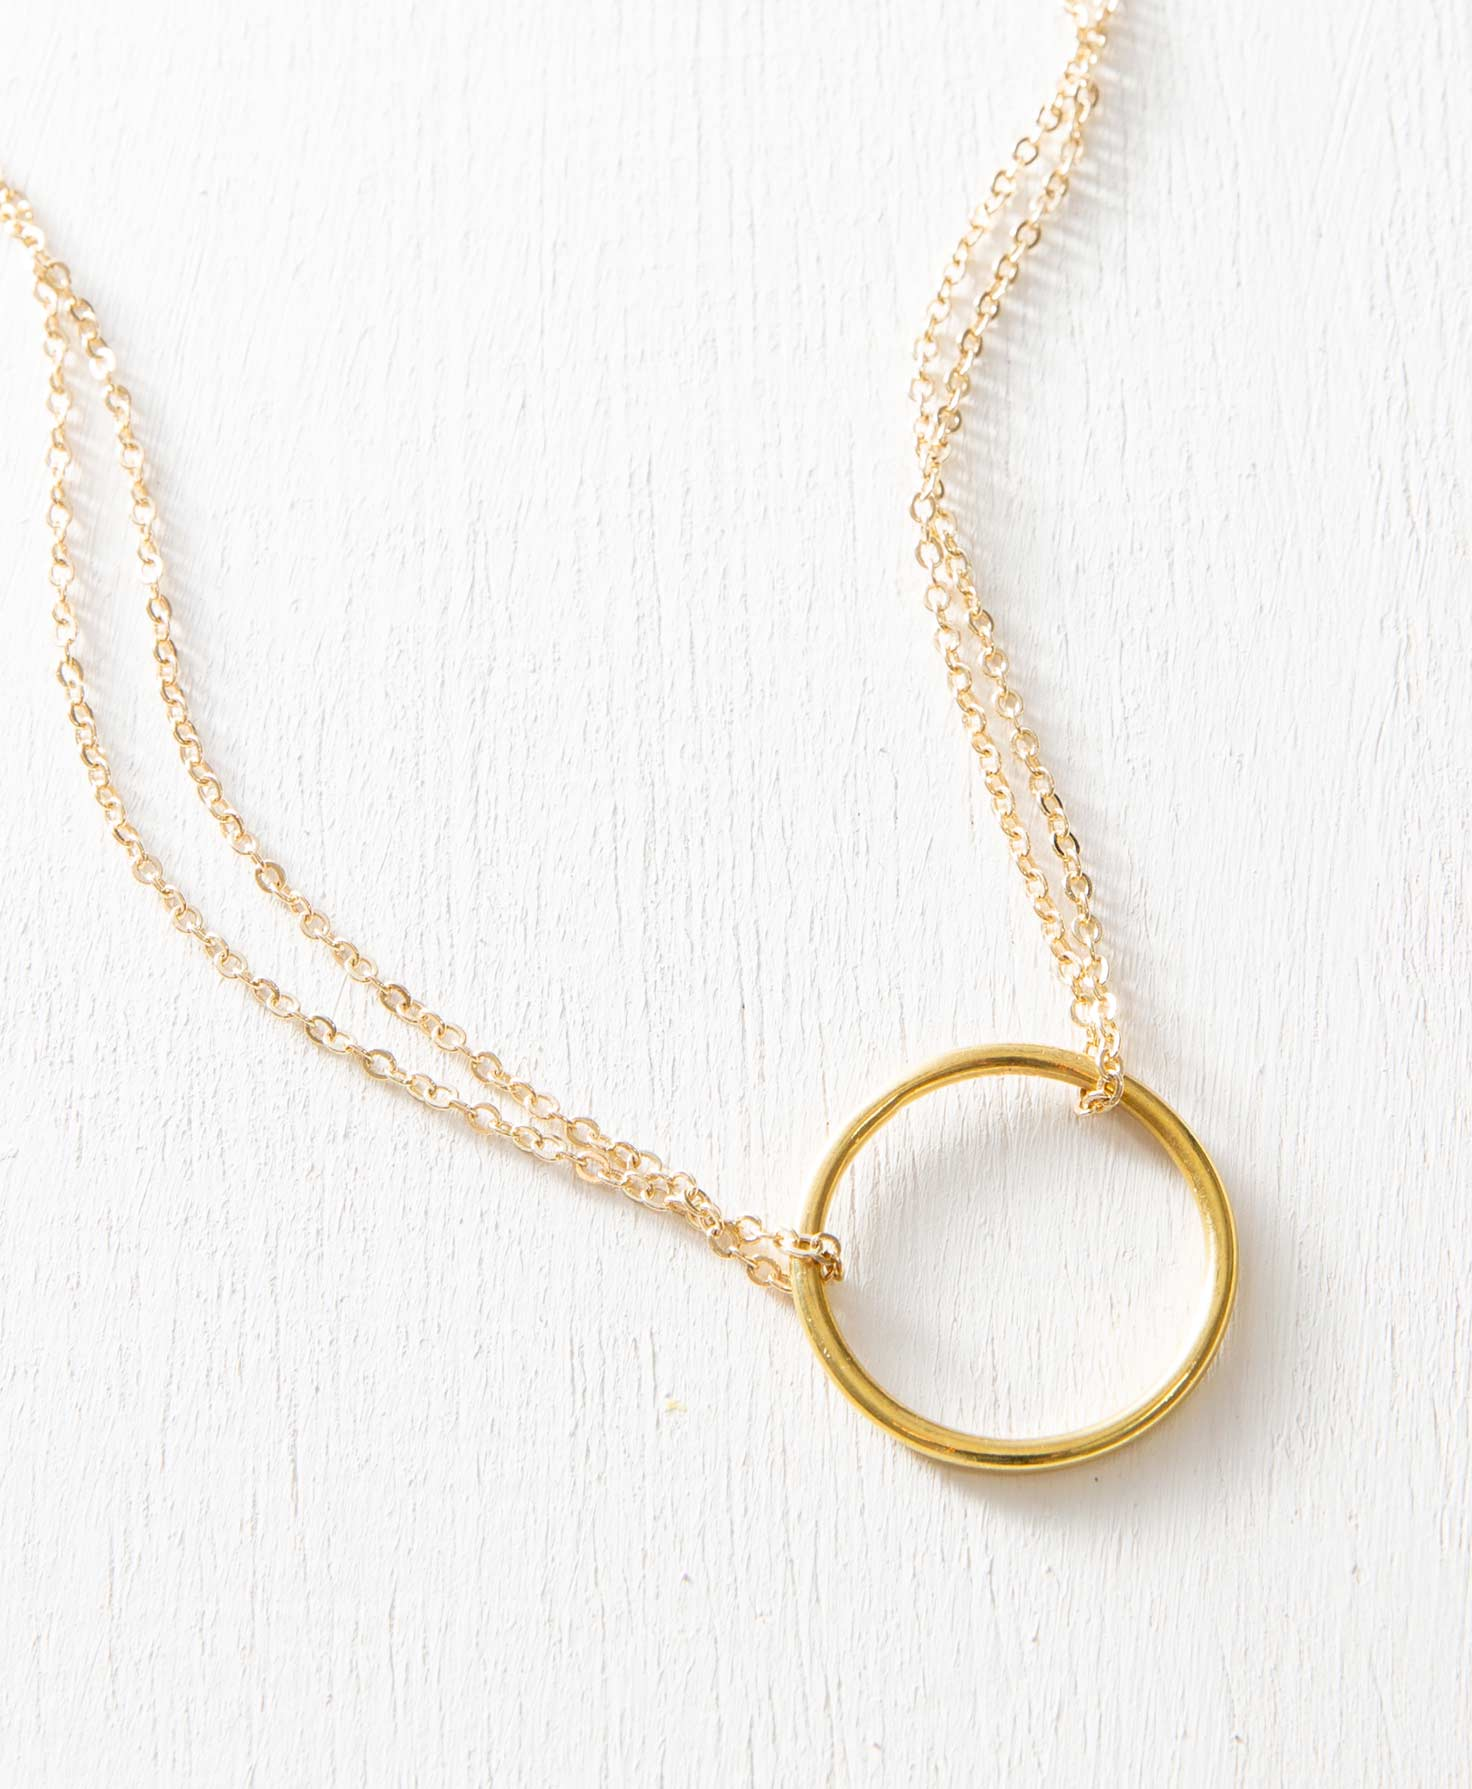 The Halcyon Necklace lays on a white background. The centerpiece of the necklace is a shining brass hoop pendant that is 1